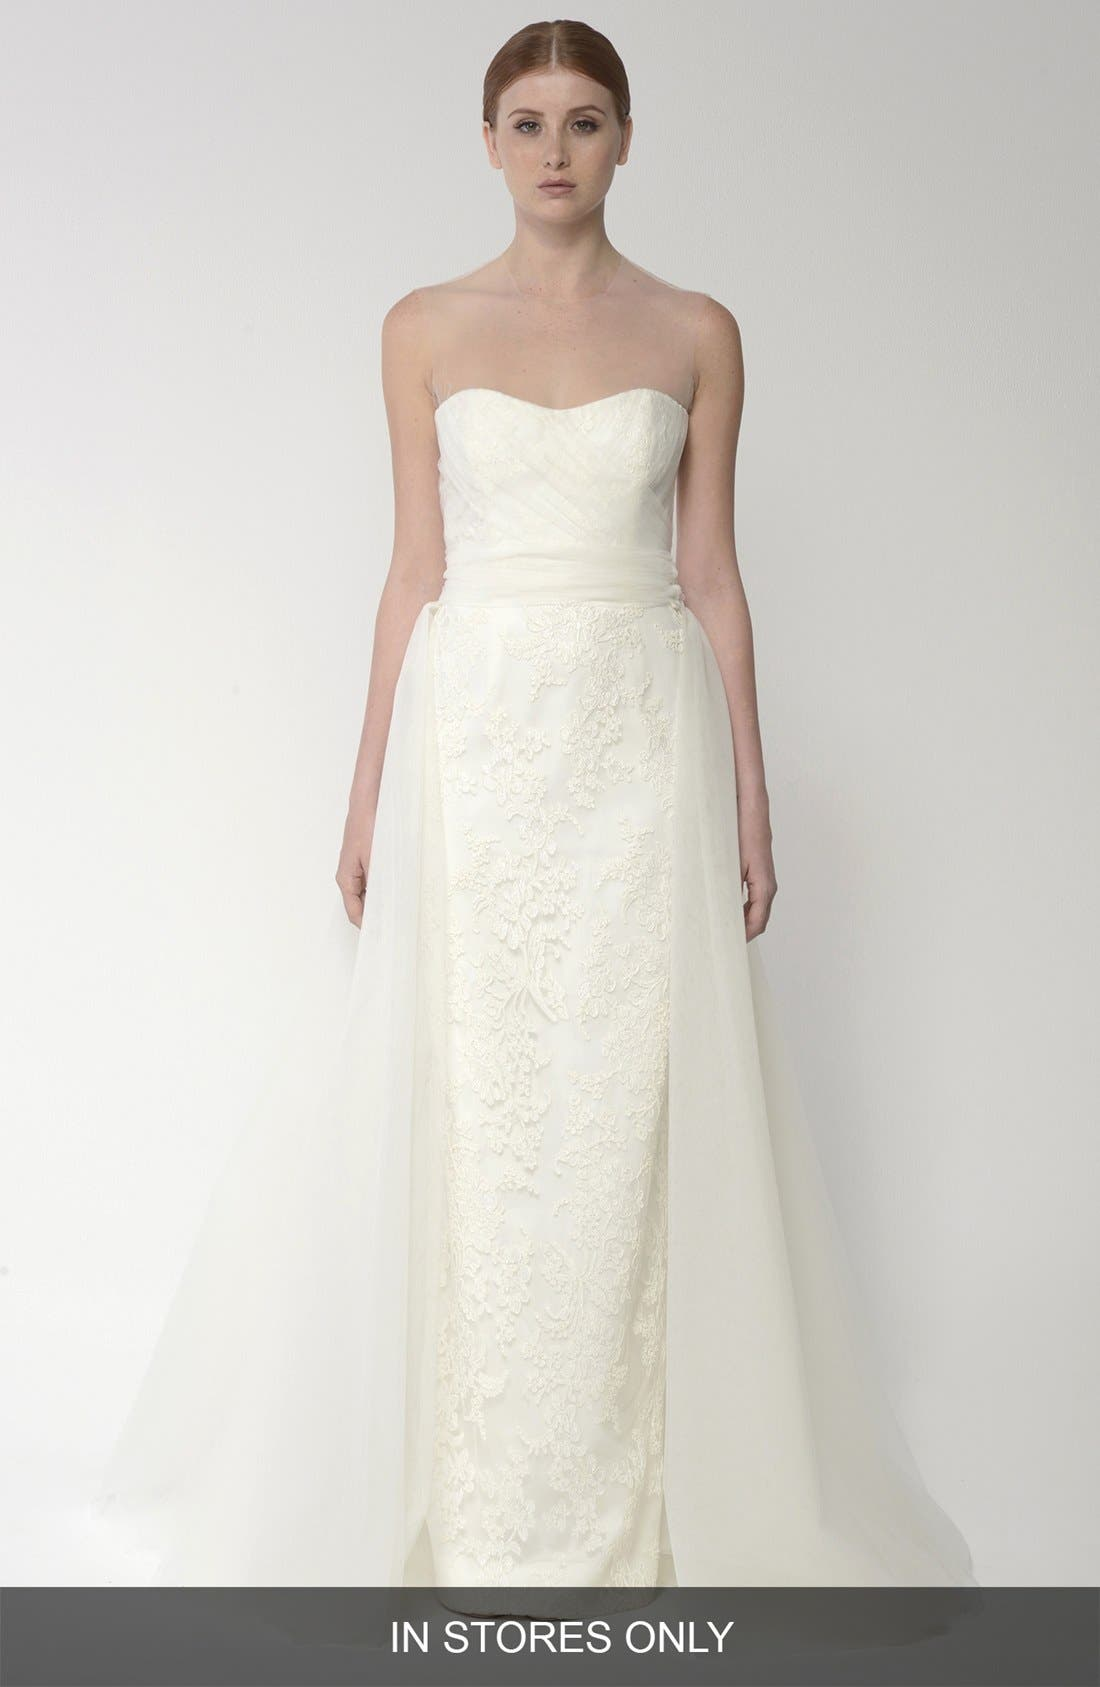 Main Image - BLISS Monique Lhuillier Embroidered Lace Gown with Detachable Tulle Overskirt